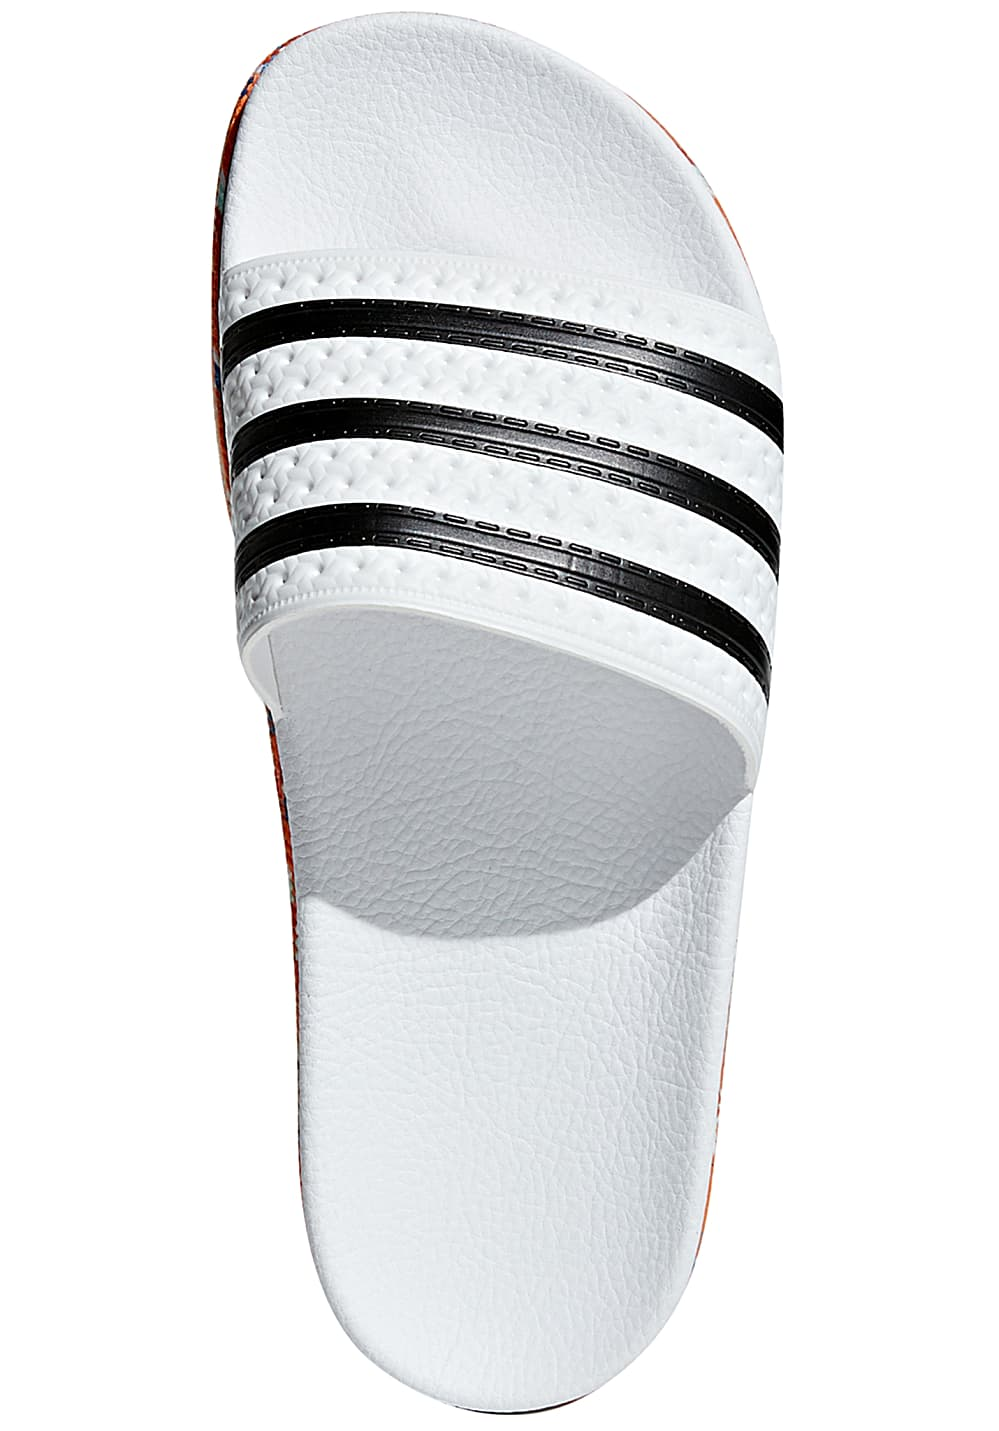 f1ac358af8629 ADIDAS ORIGINALS Adilette New Bold - Sandals for Women - White